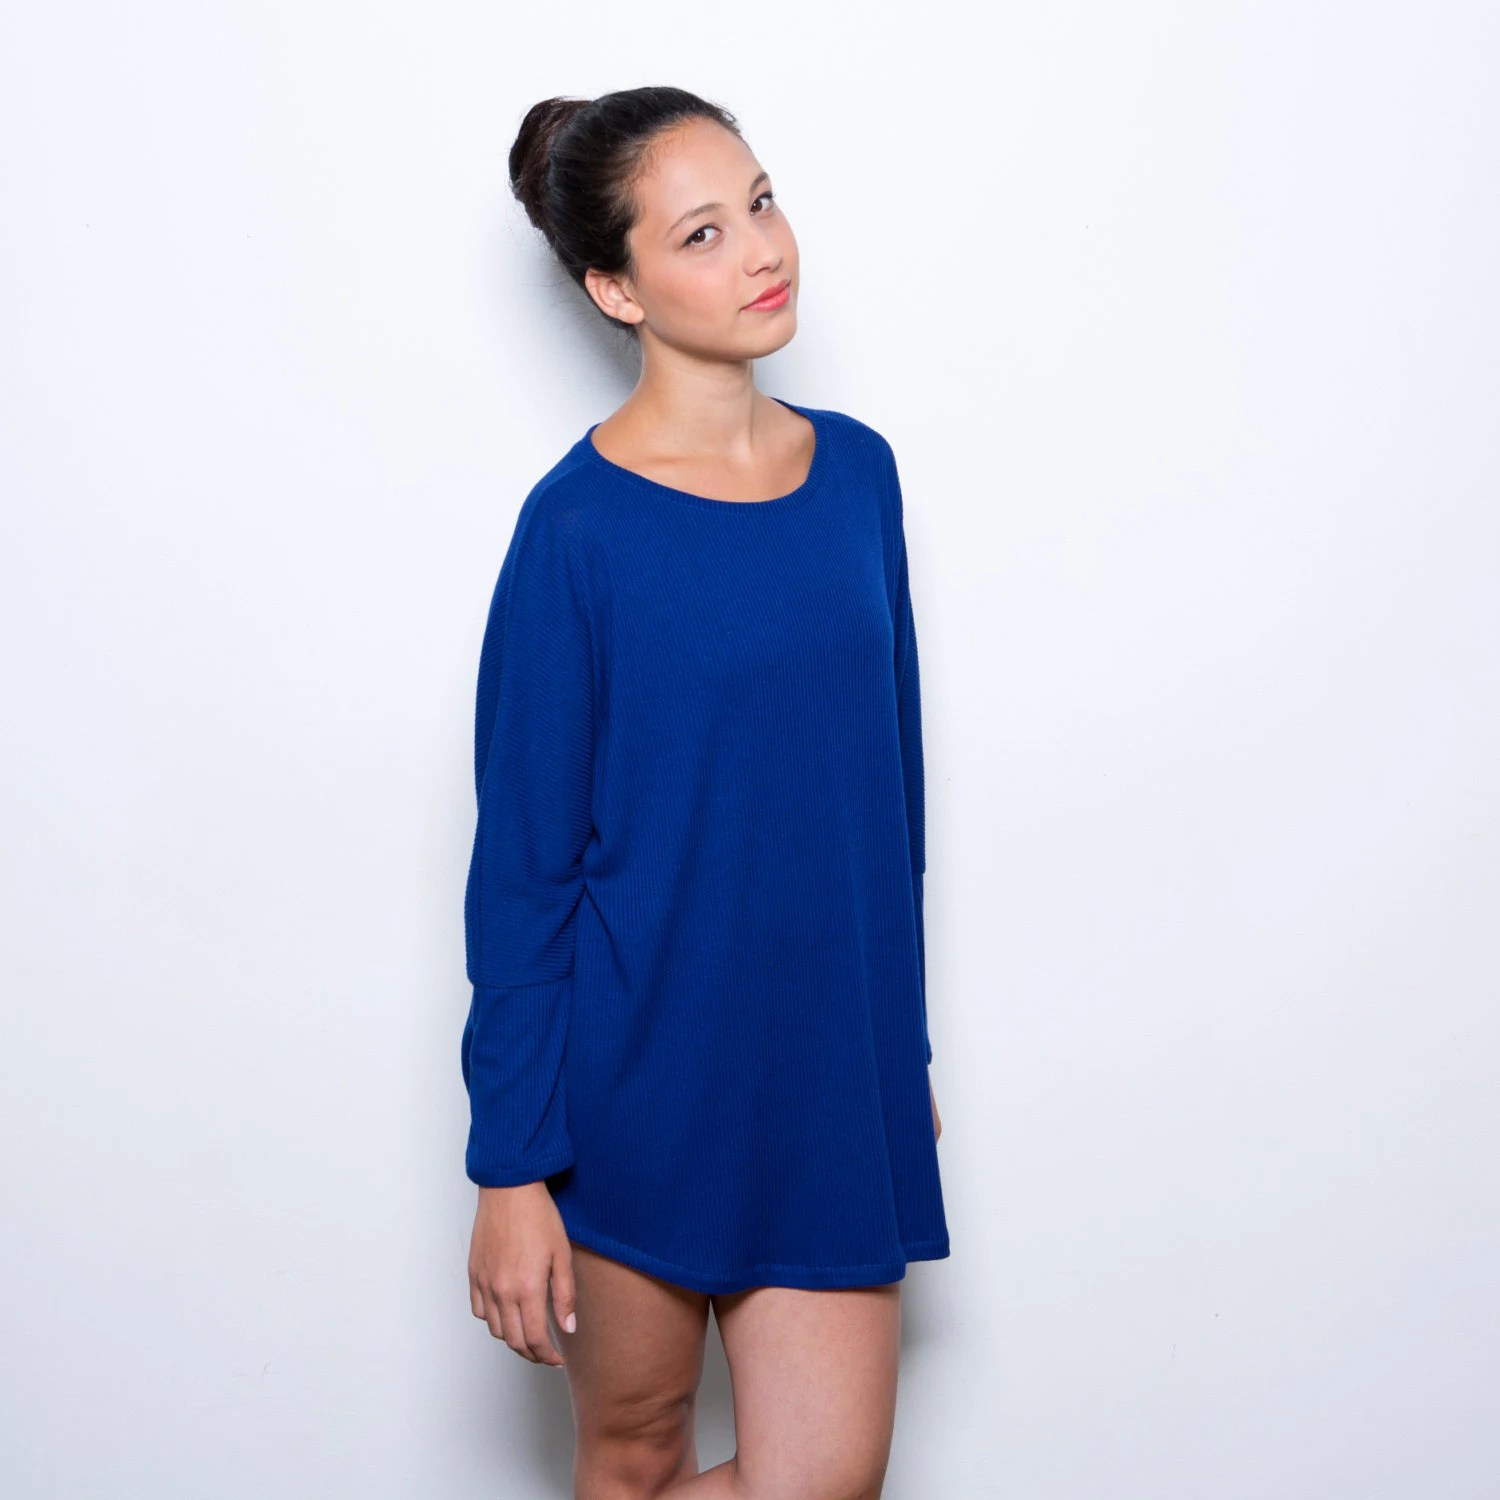 Blue tunic women oversize shirt, women blue top one size fits all - AndyVeEirn